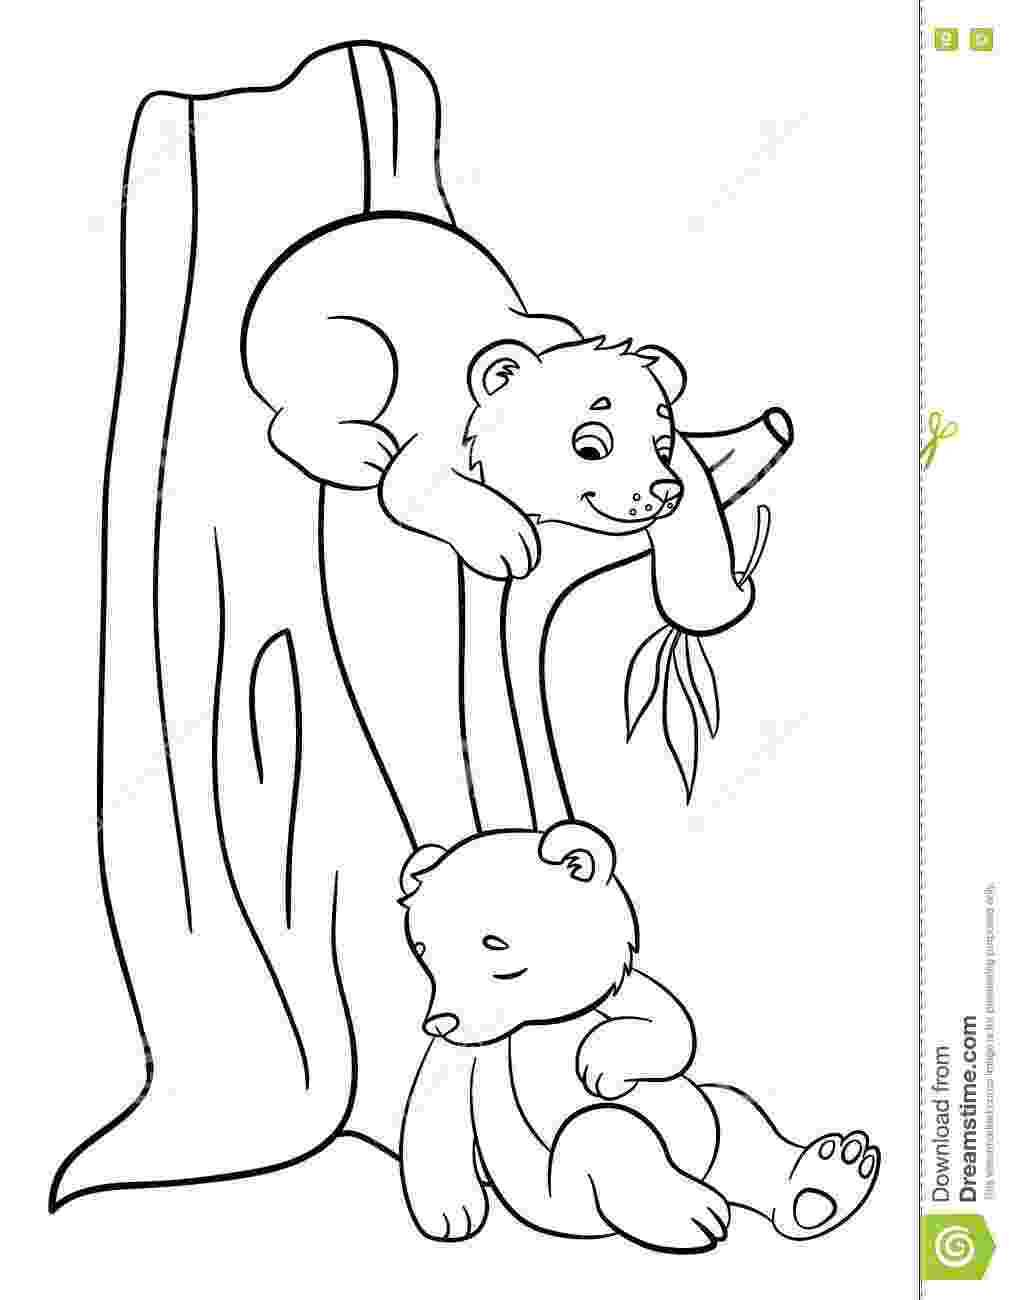 cute wild animals colouring pages crocodile animal coloring page cute wild animals wild cute colouring animals pages